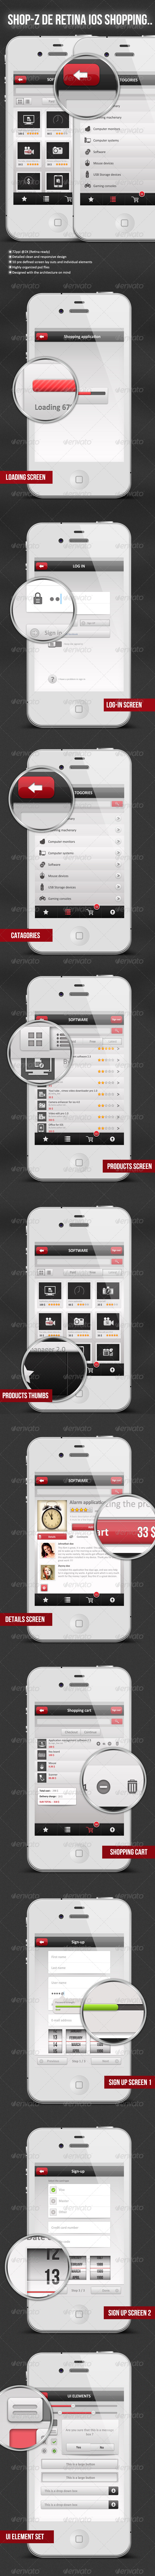 GraphicRiver Shop-Z De Retina Retina Shopping Application 4162639